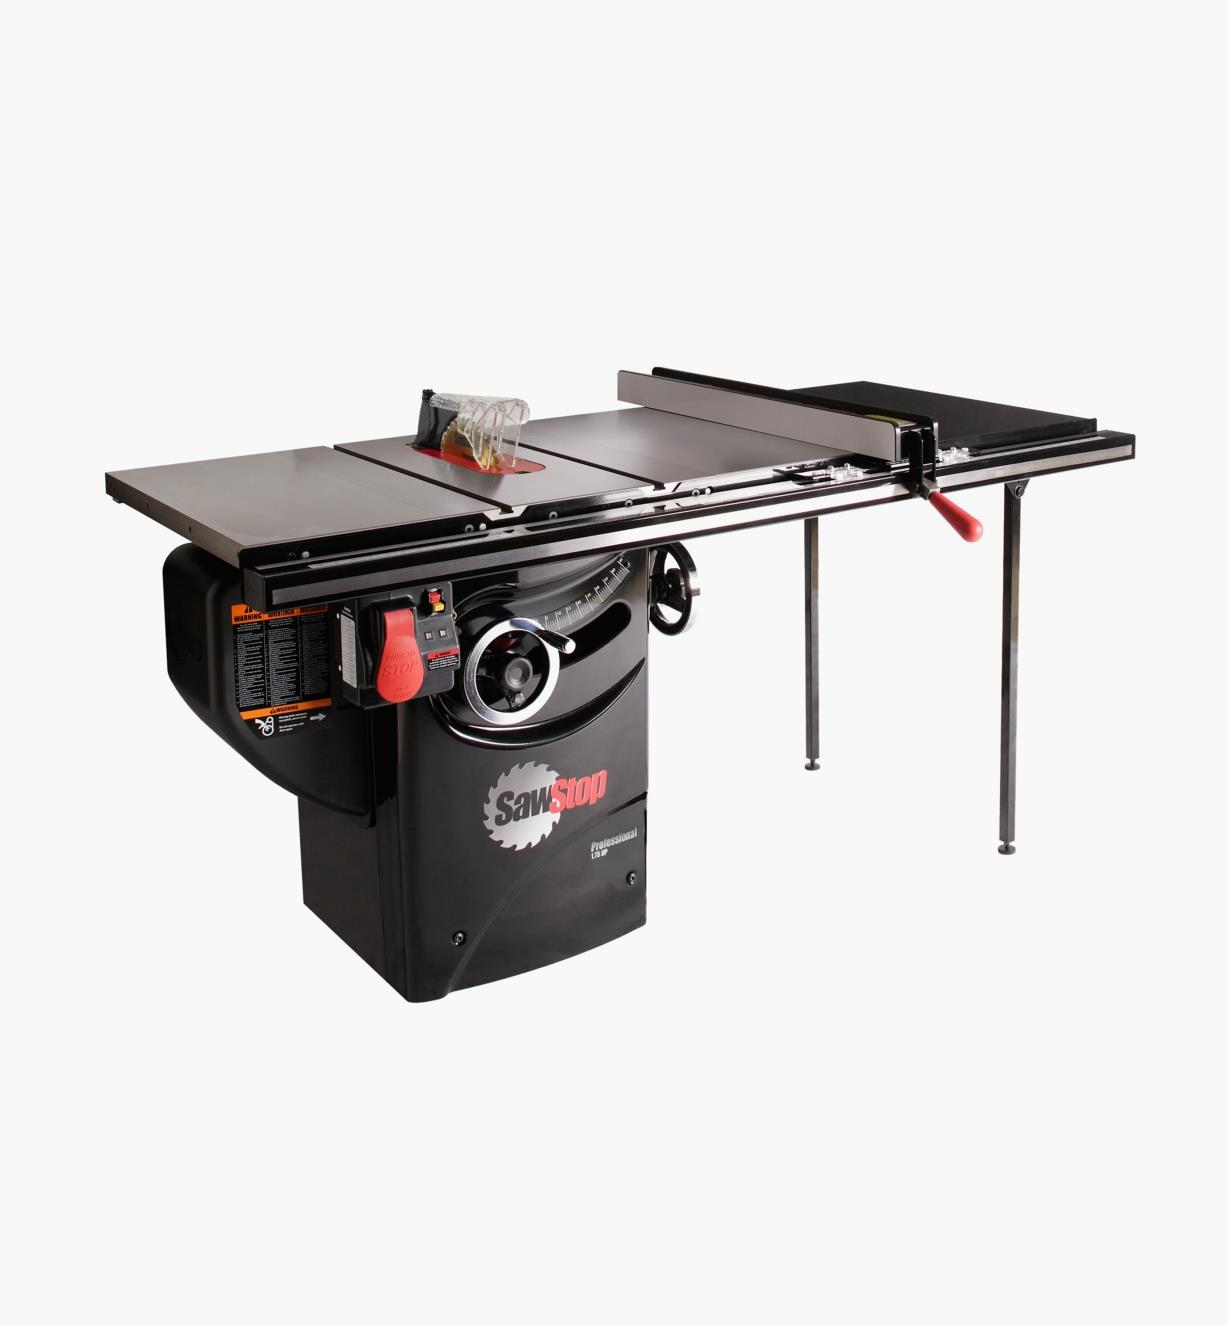 "95T2061 - SawStop 1.75hp Professional Cabinet Saw with T-Glide Fence, 36"" Rails"